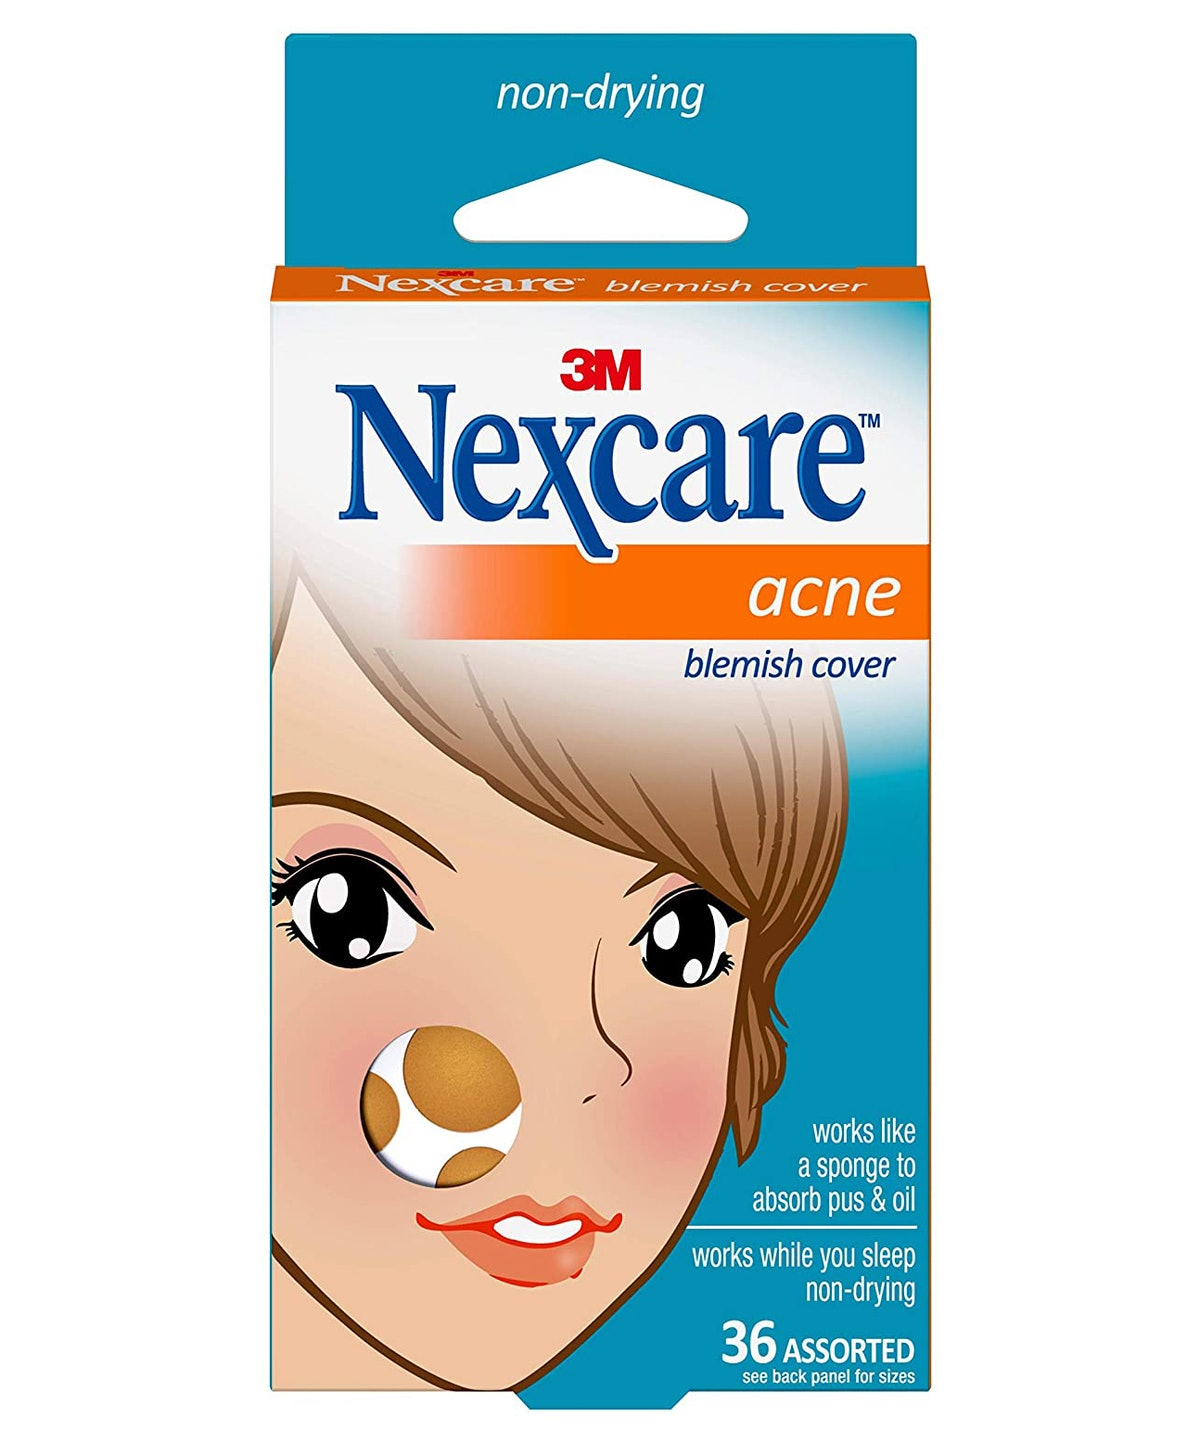 Nexcare Acne Blemish Cover (36-Count)